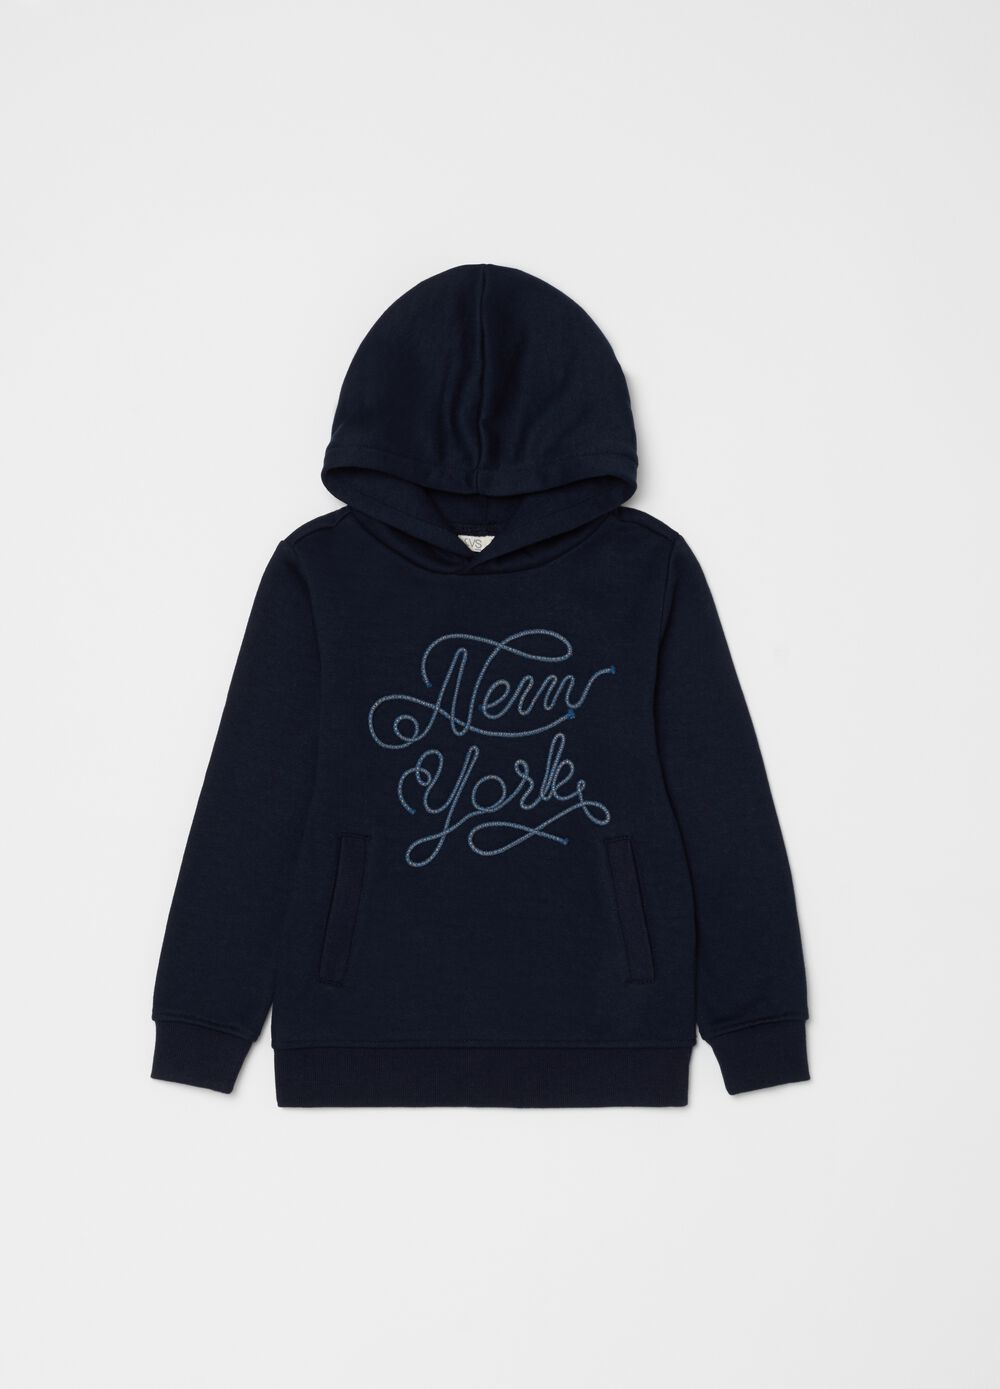 Sweatshirt with hood and lettering embroidery